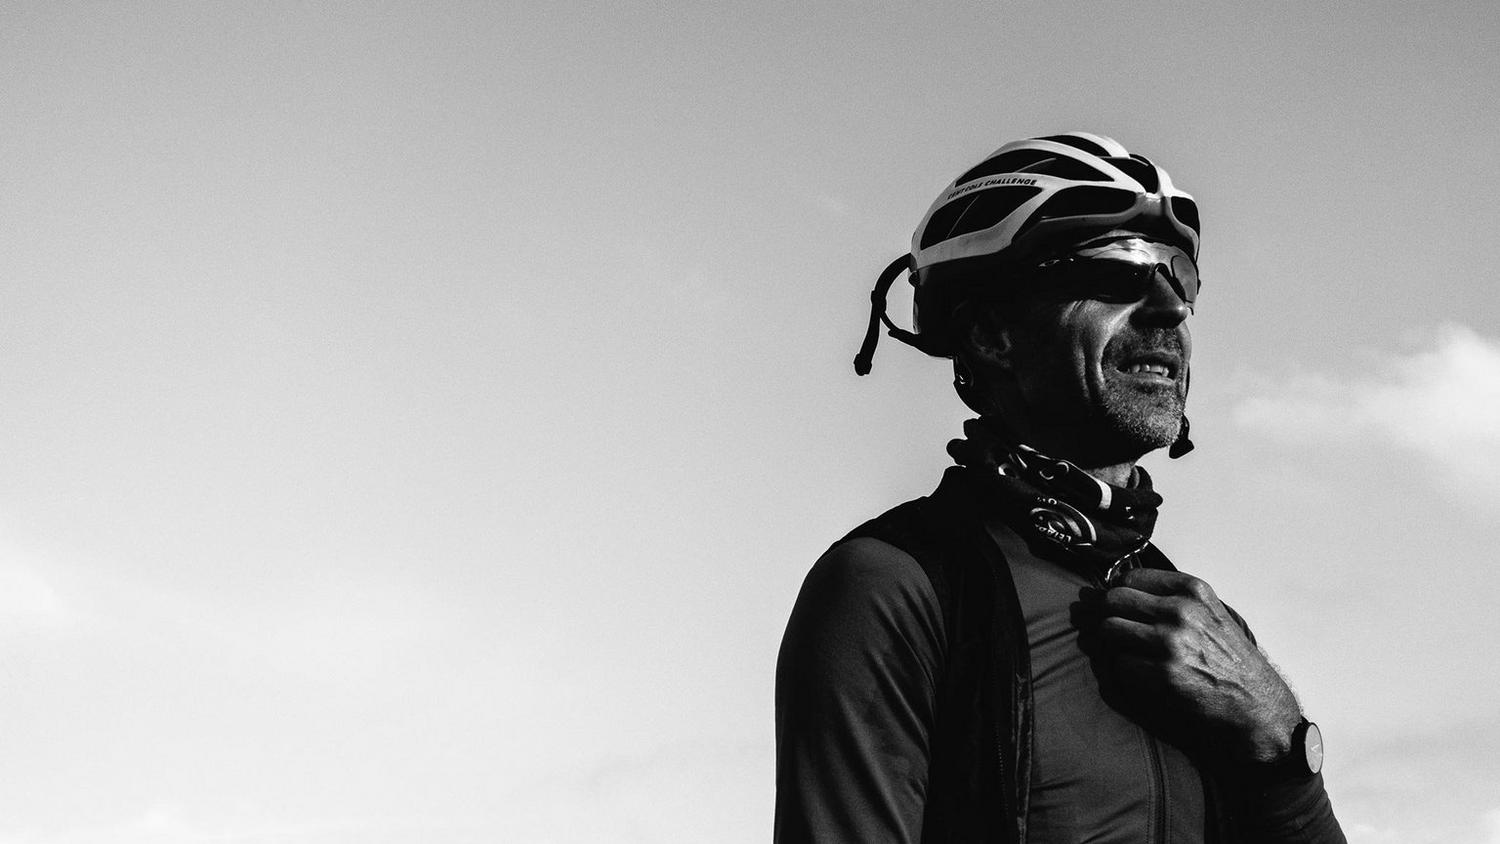 Rapha Travel x The Cycling Podcast: Phil Deeker in conversation with The Cycling Podcast